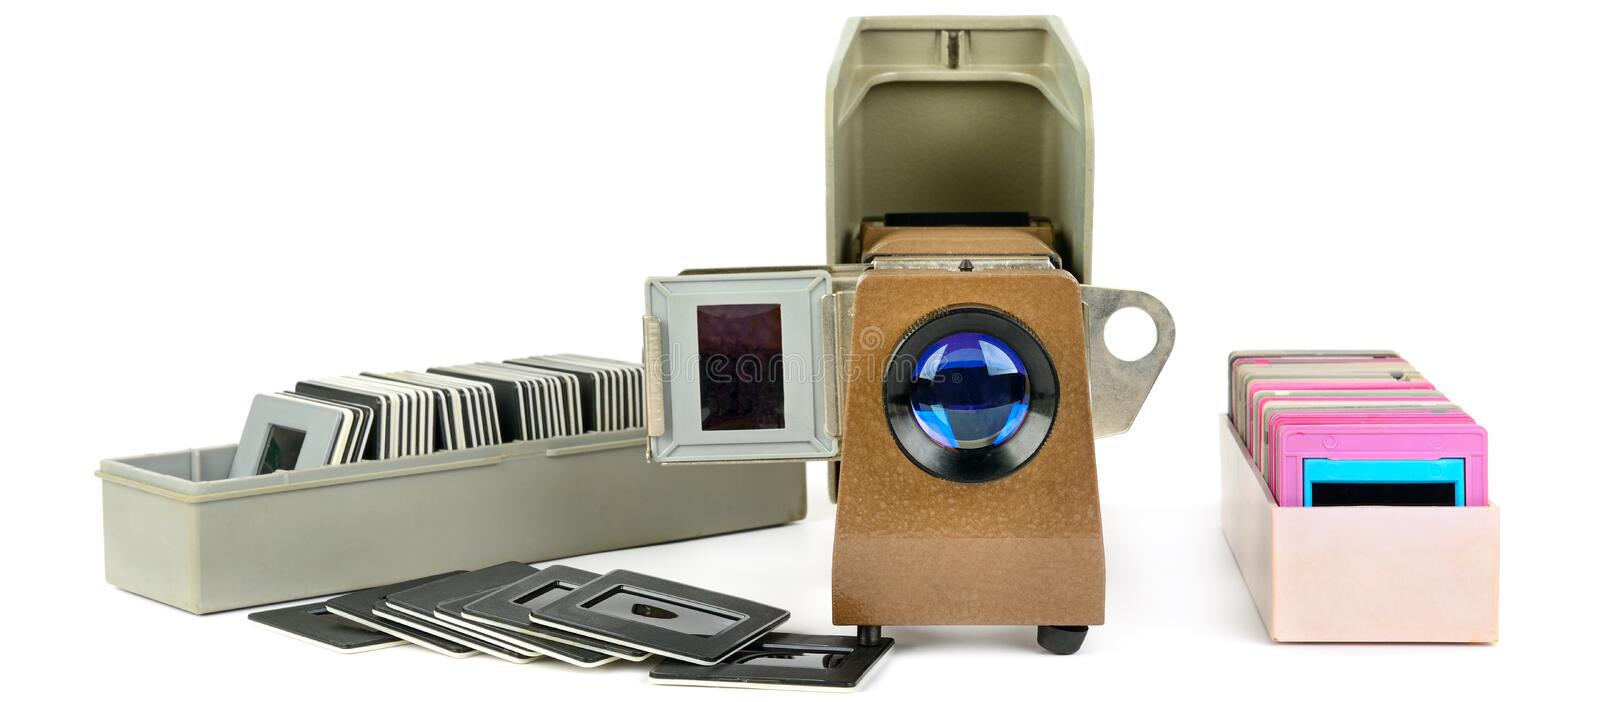 Old slide projector and set of slides isolated on white background. Wide photo royalty free stock photos